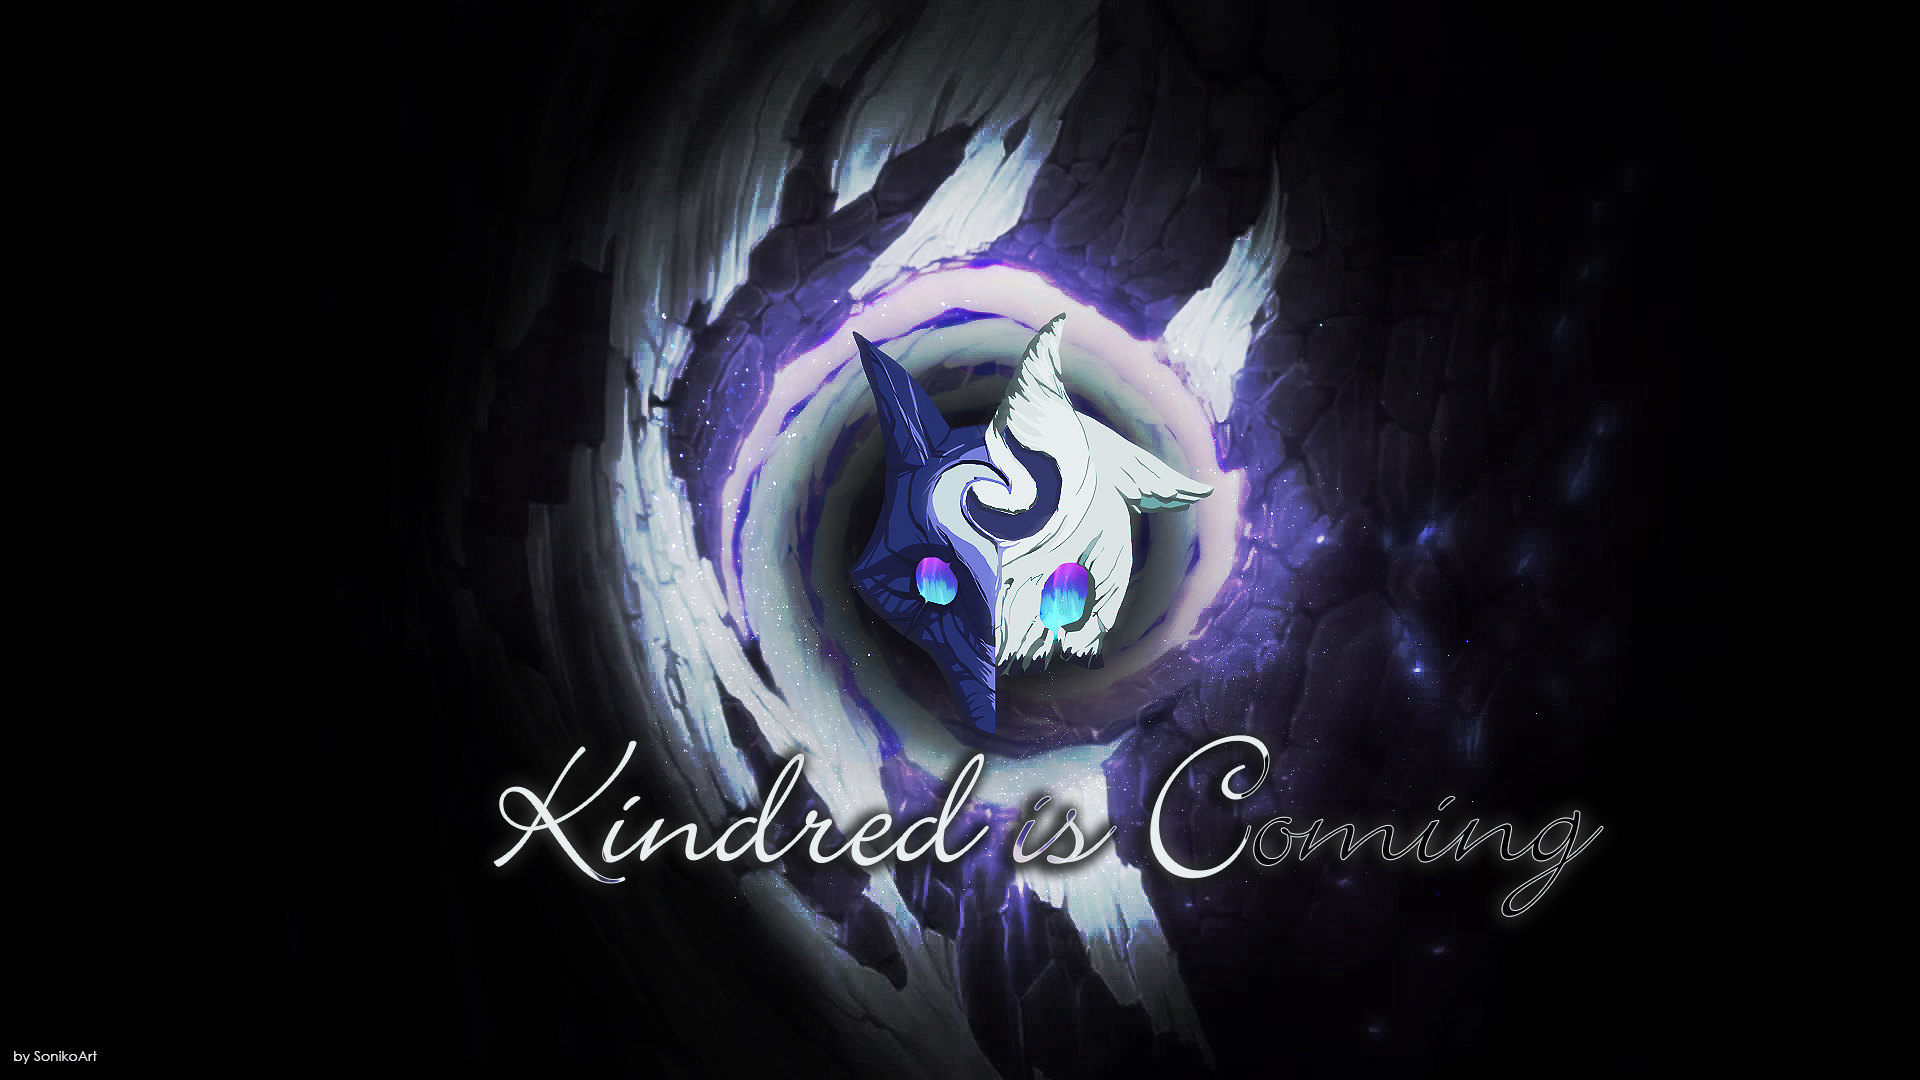 kindred_is_coming_by_sonikoart-d9iu5m2